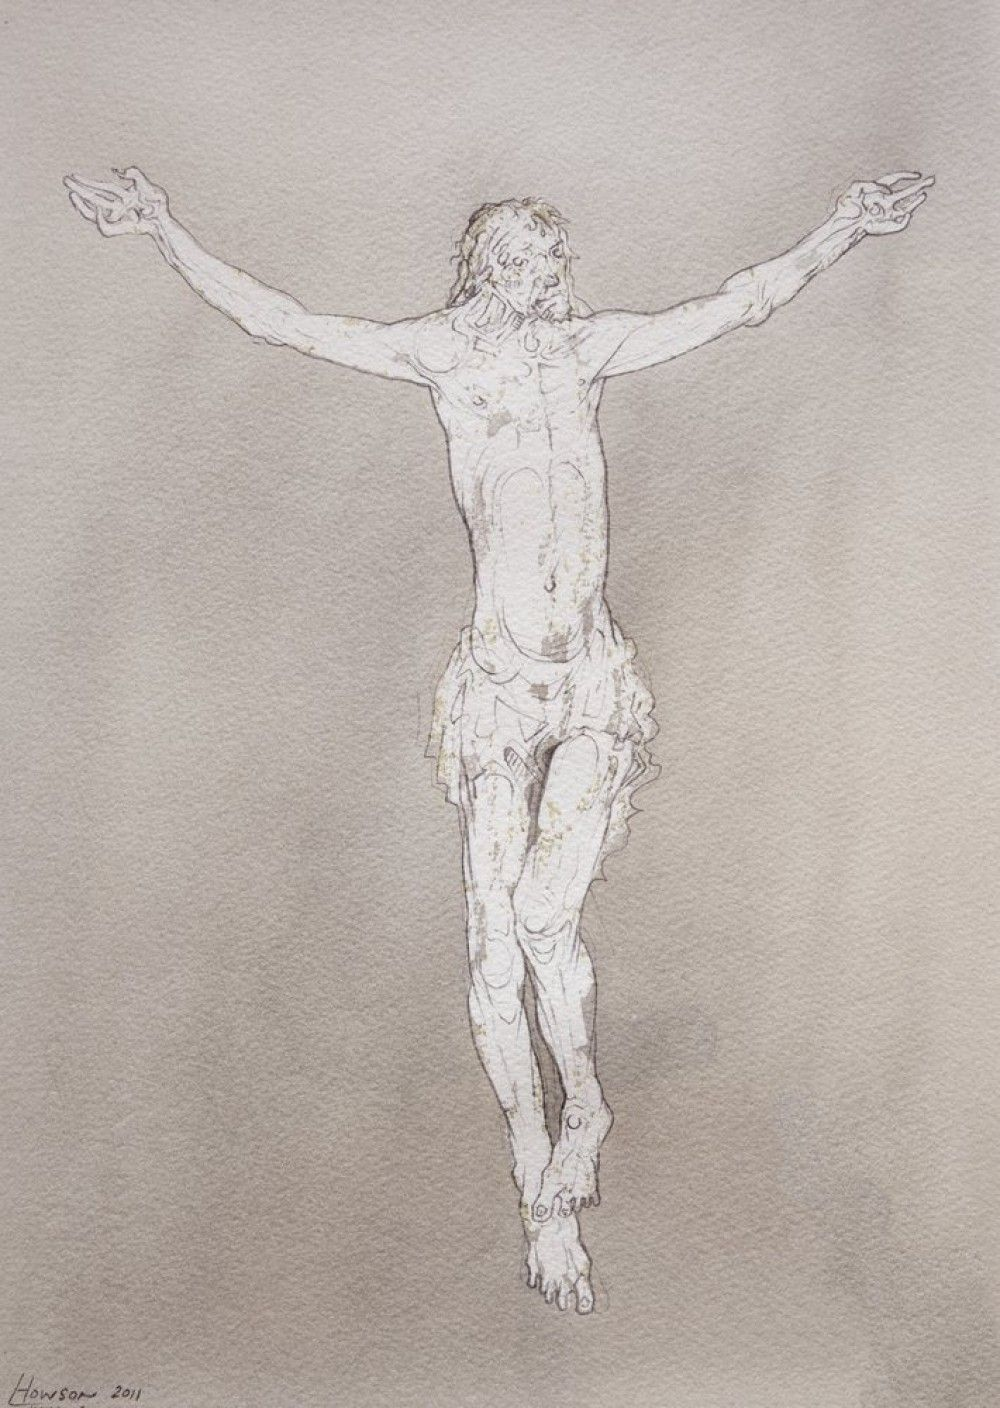 Peter Howson 'Christ', 2013, 35.5x25.5cm, pencil and ink on paper.